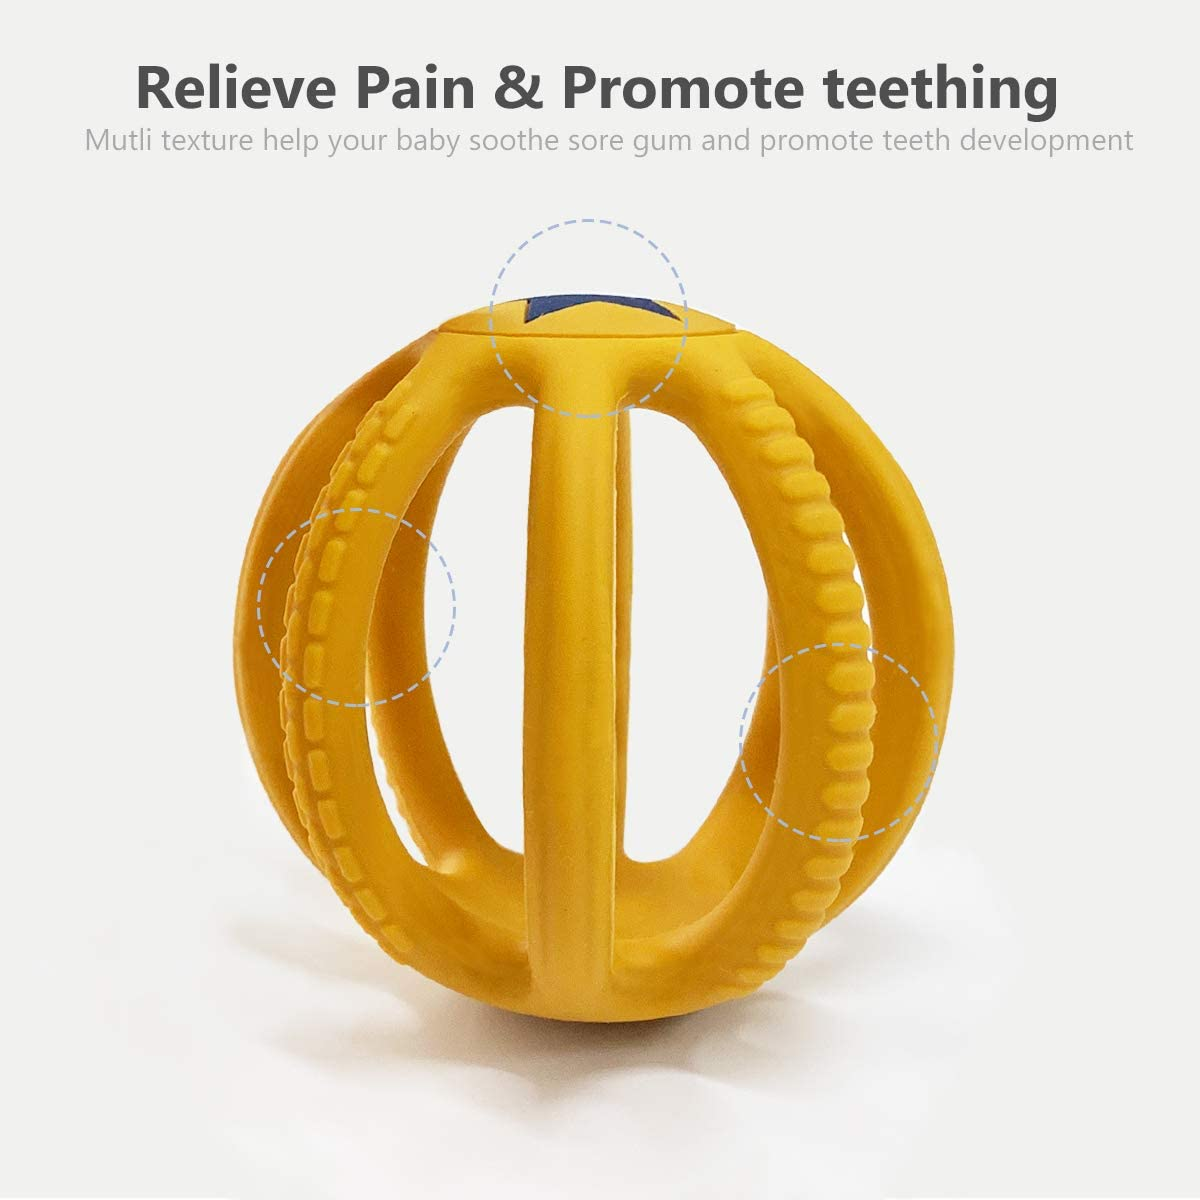 Baby Teething Toys for Babies 0-6 Months /& 6-12 Months Silicone Baby Teether to Exercise Grasping /& 3D Cognition Massage Gums /& Soothe Teething Yellow